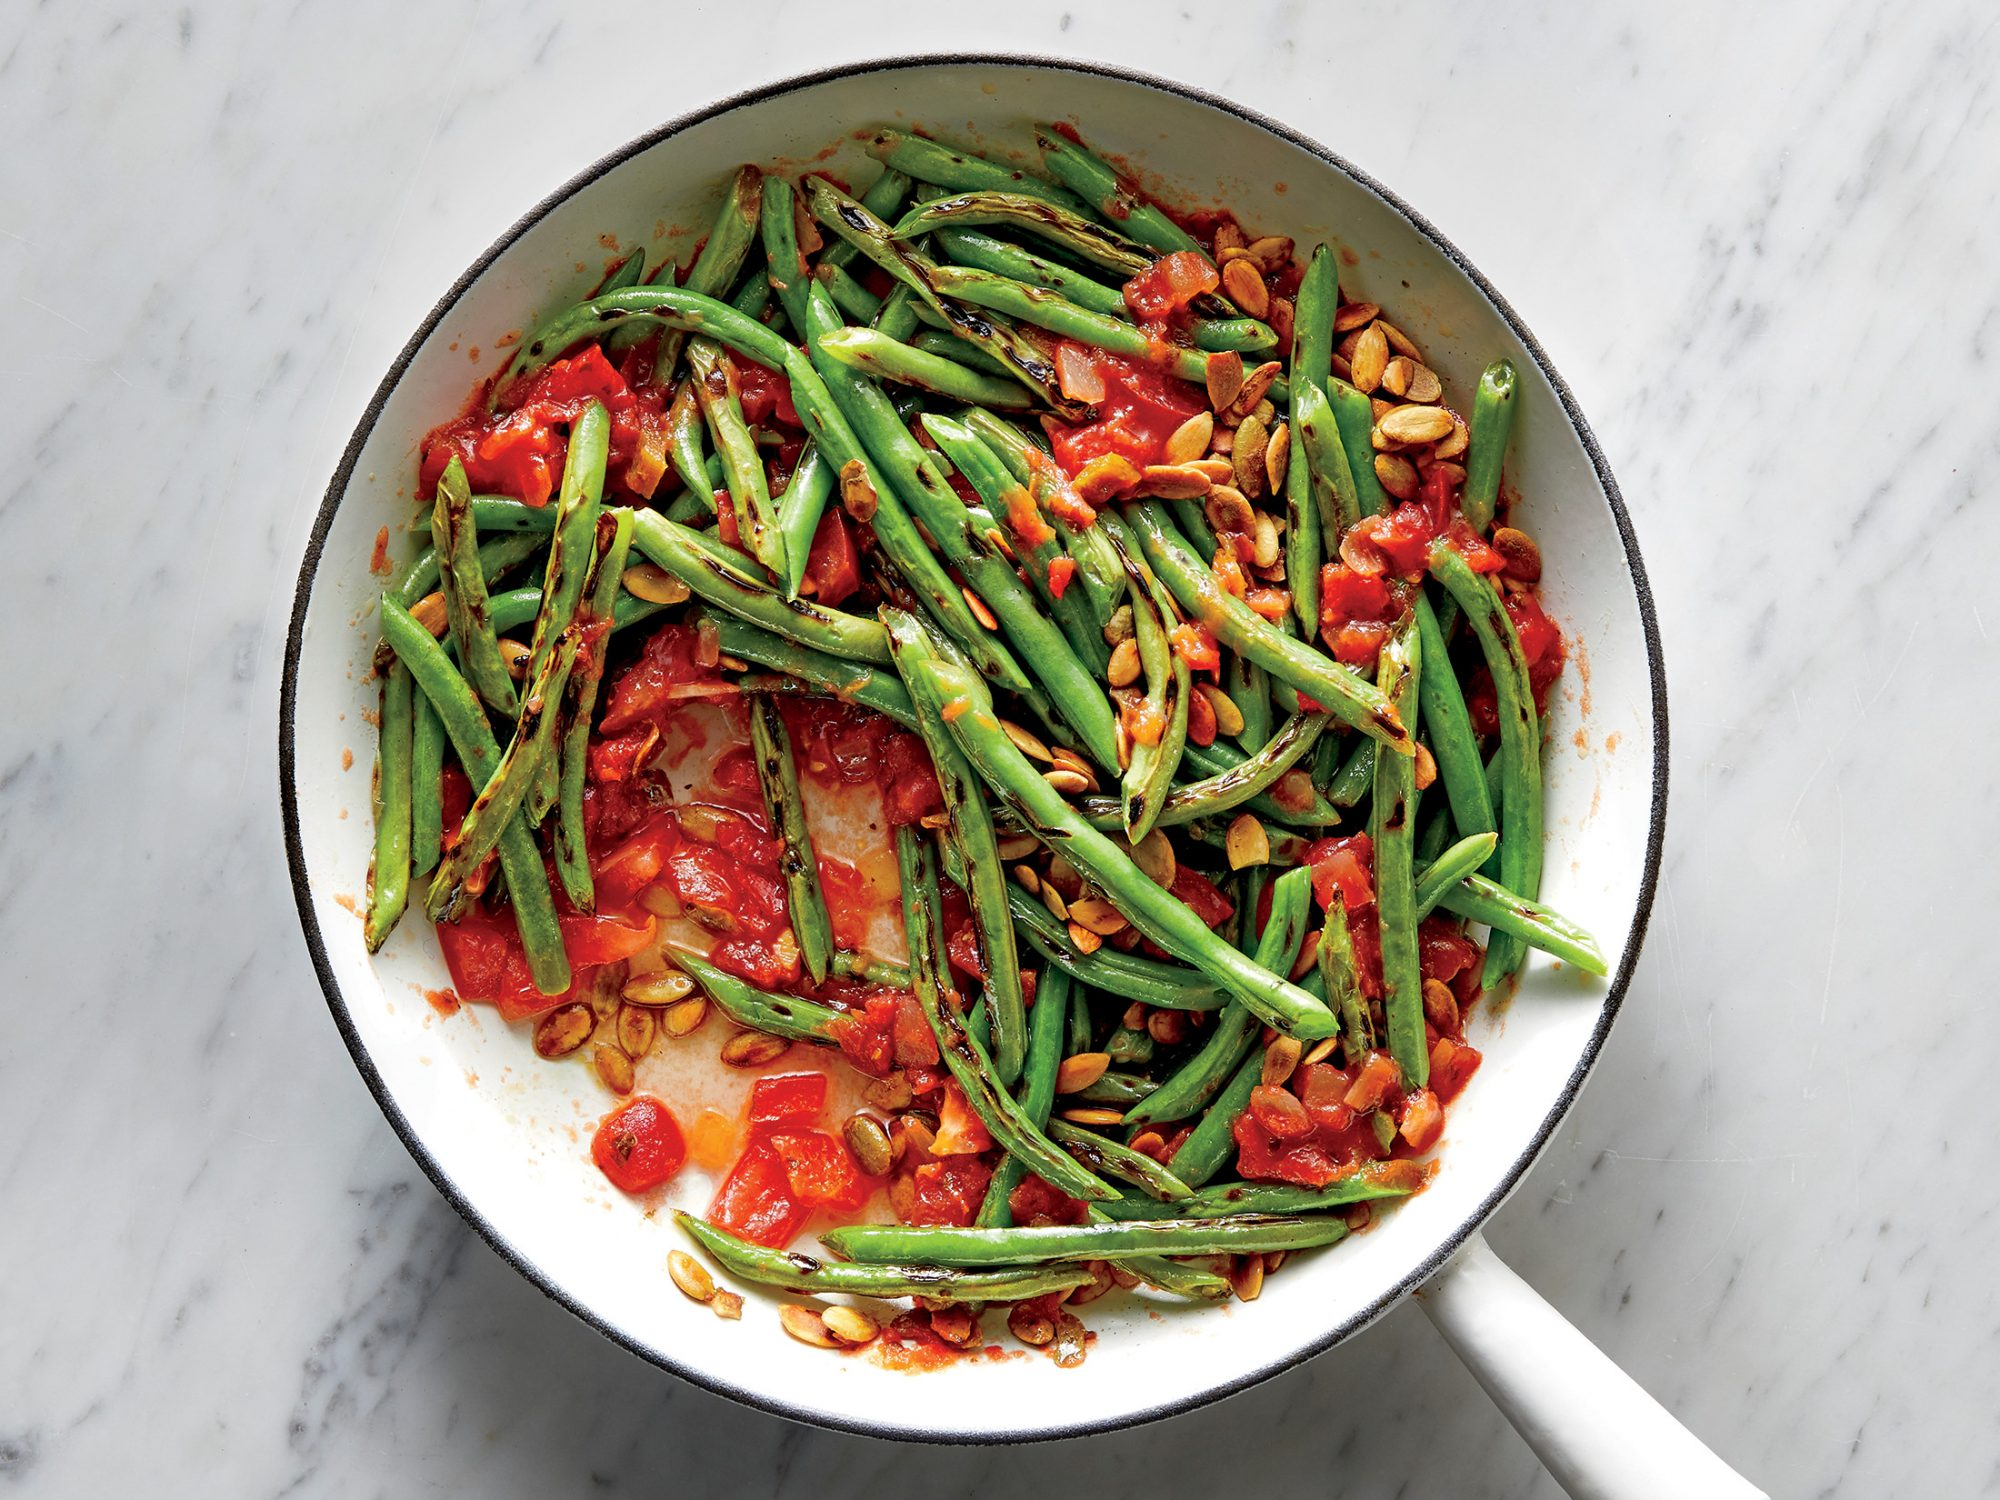 Skillet-Charred Green Beans with Salsa